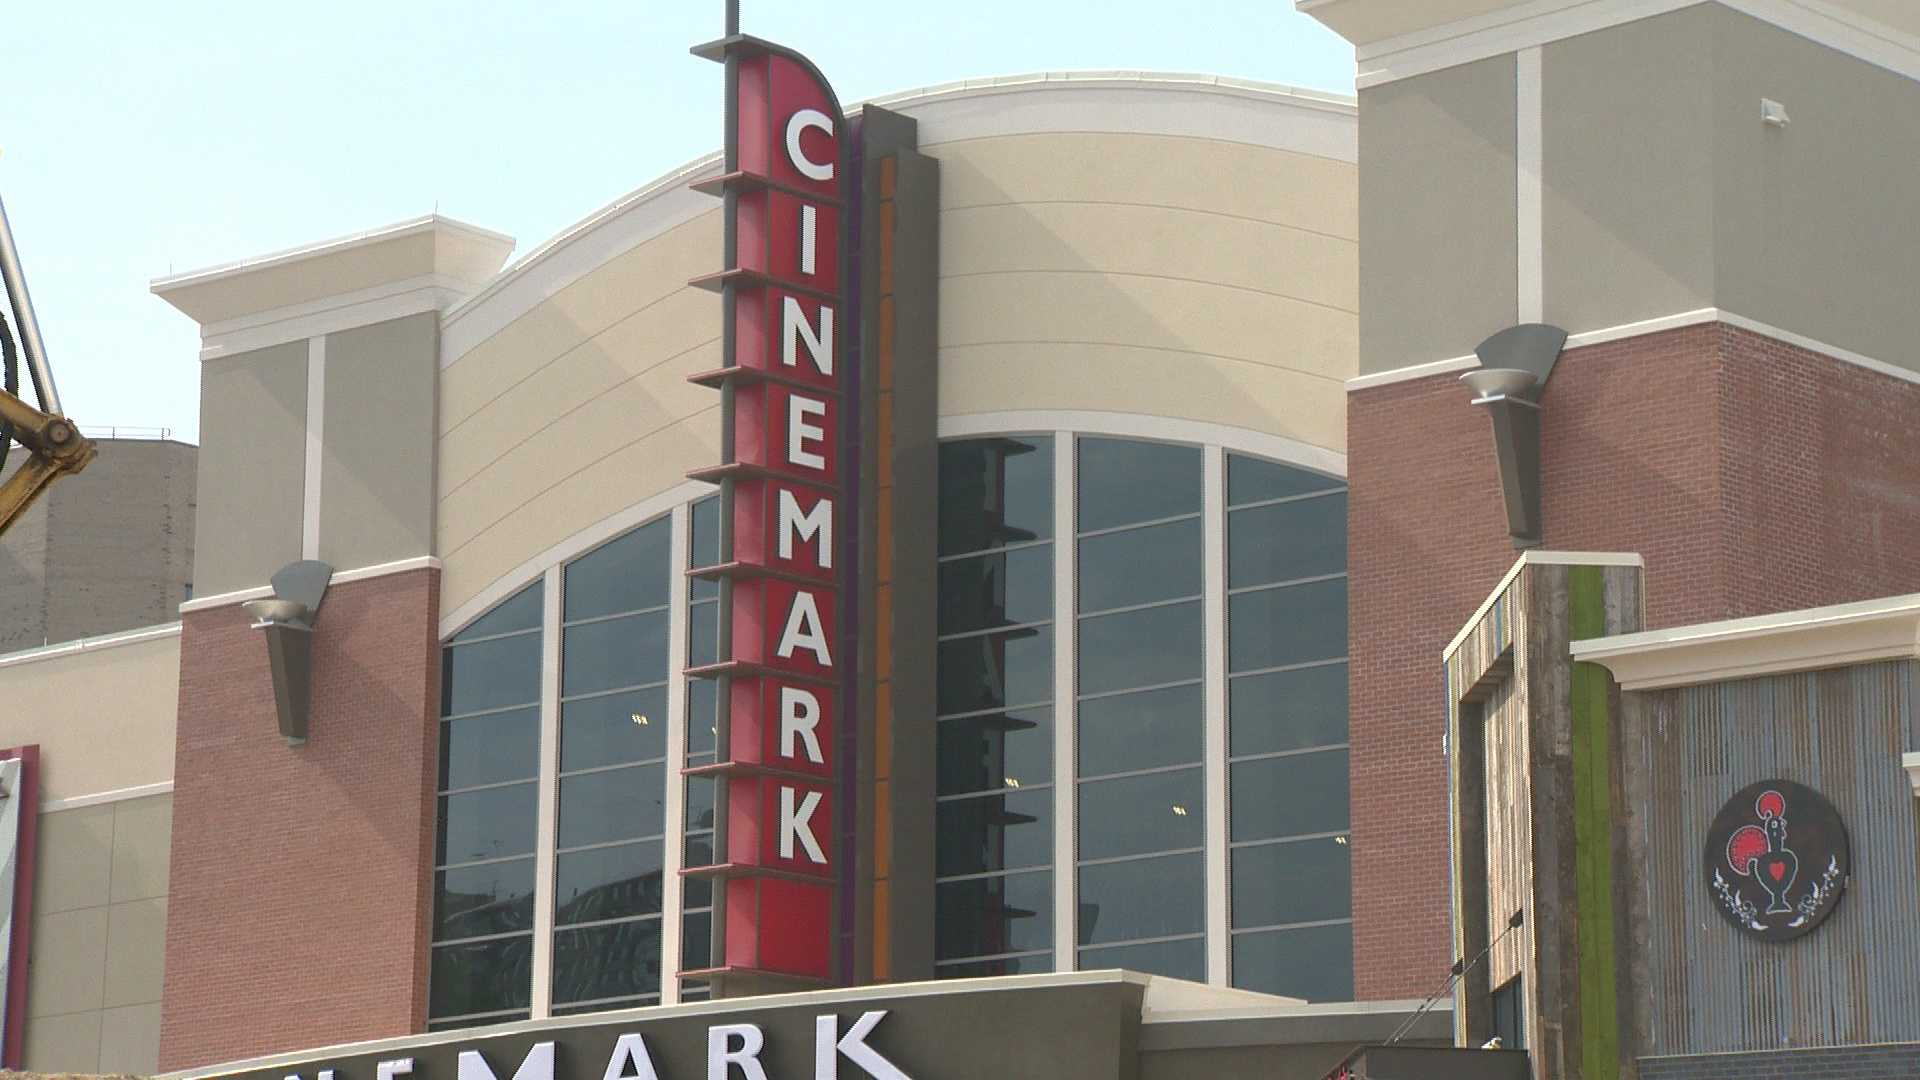 The new Cinemark Theater in Towson